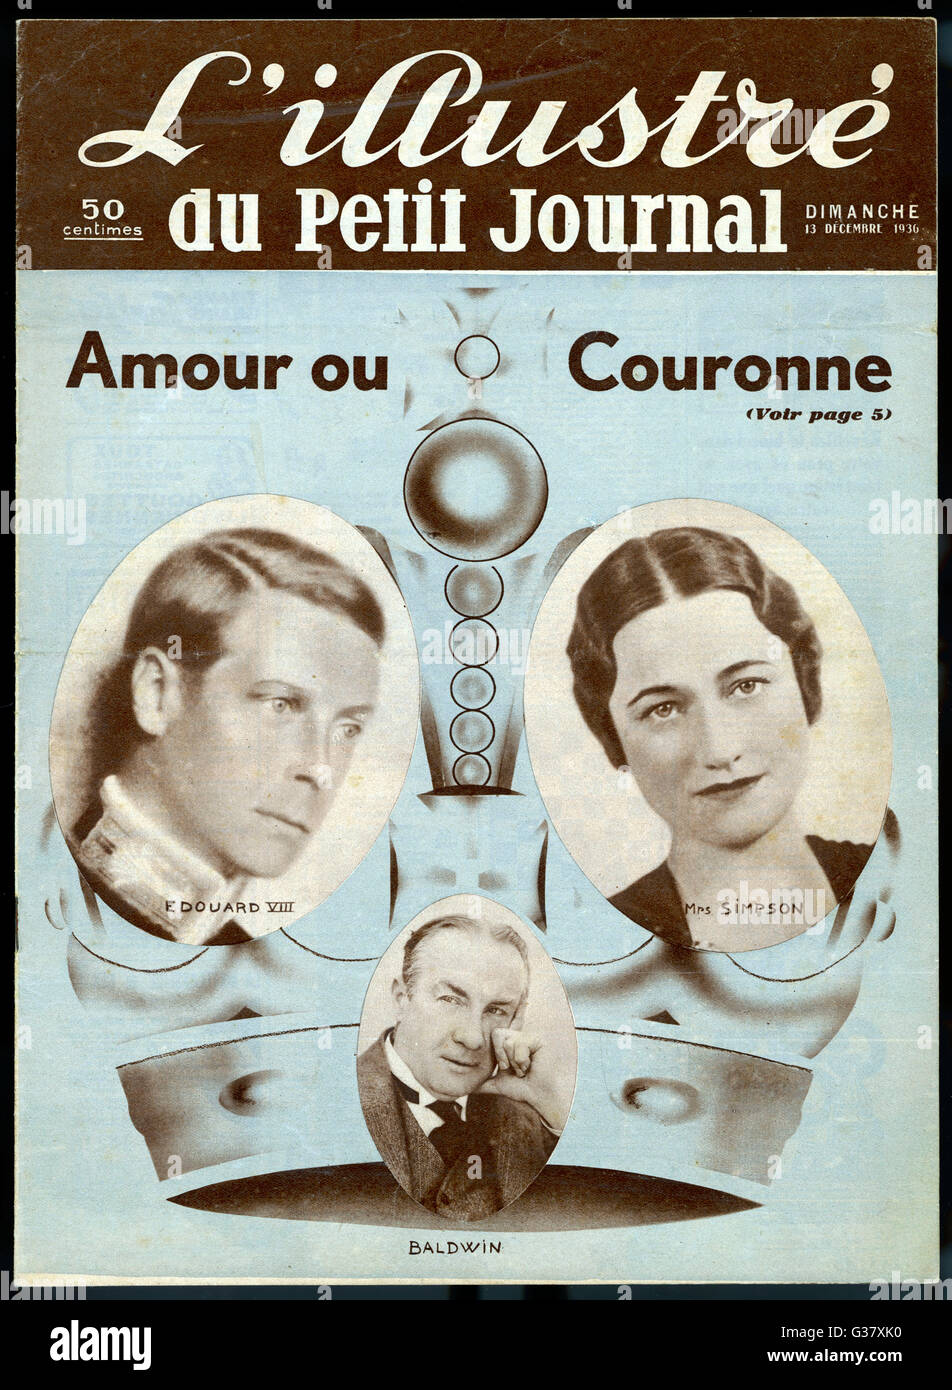 'Amour ou Couronne'? Edward VIII makes his choice, with a little help from Stanley Baldwin, the Prime Minister. - Stock Image